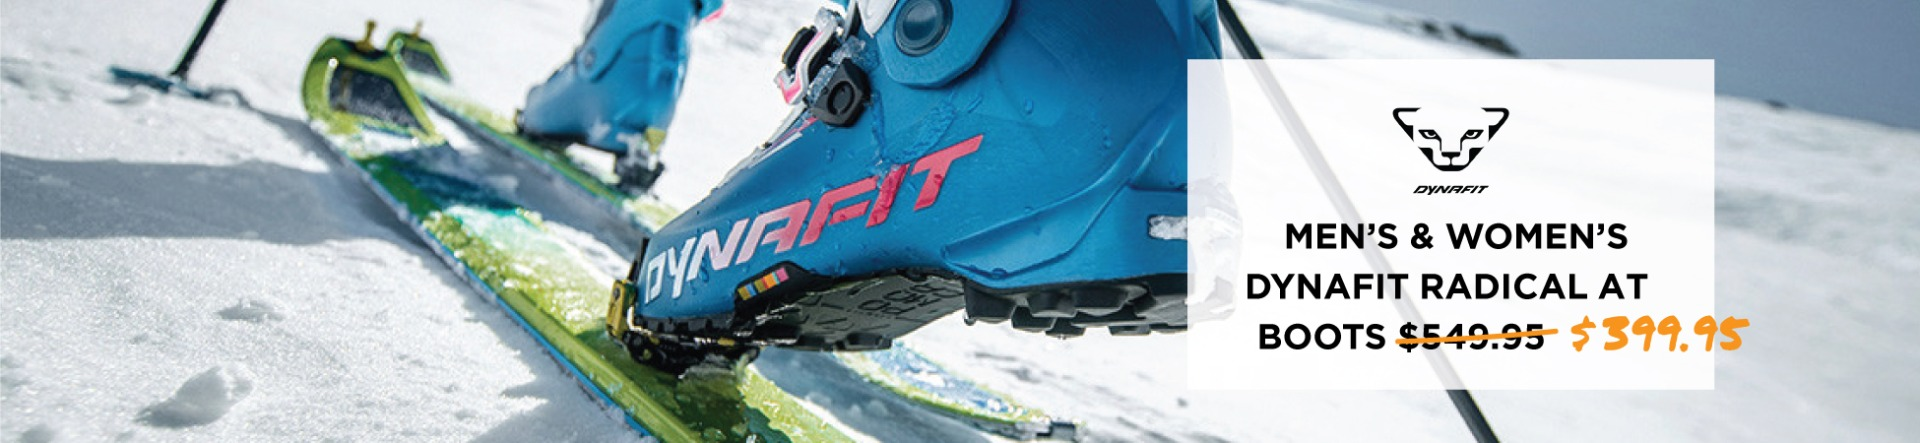 Men's and Women's Dynafit Radical Boots $399.95